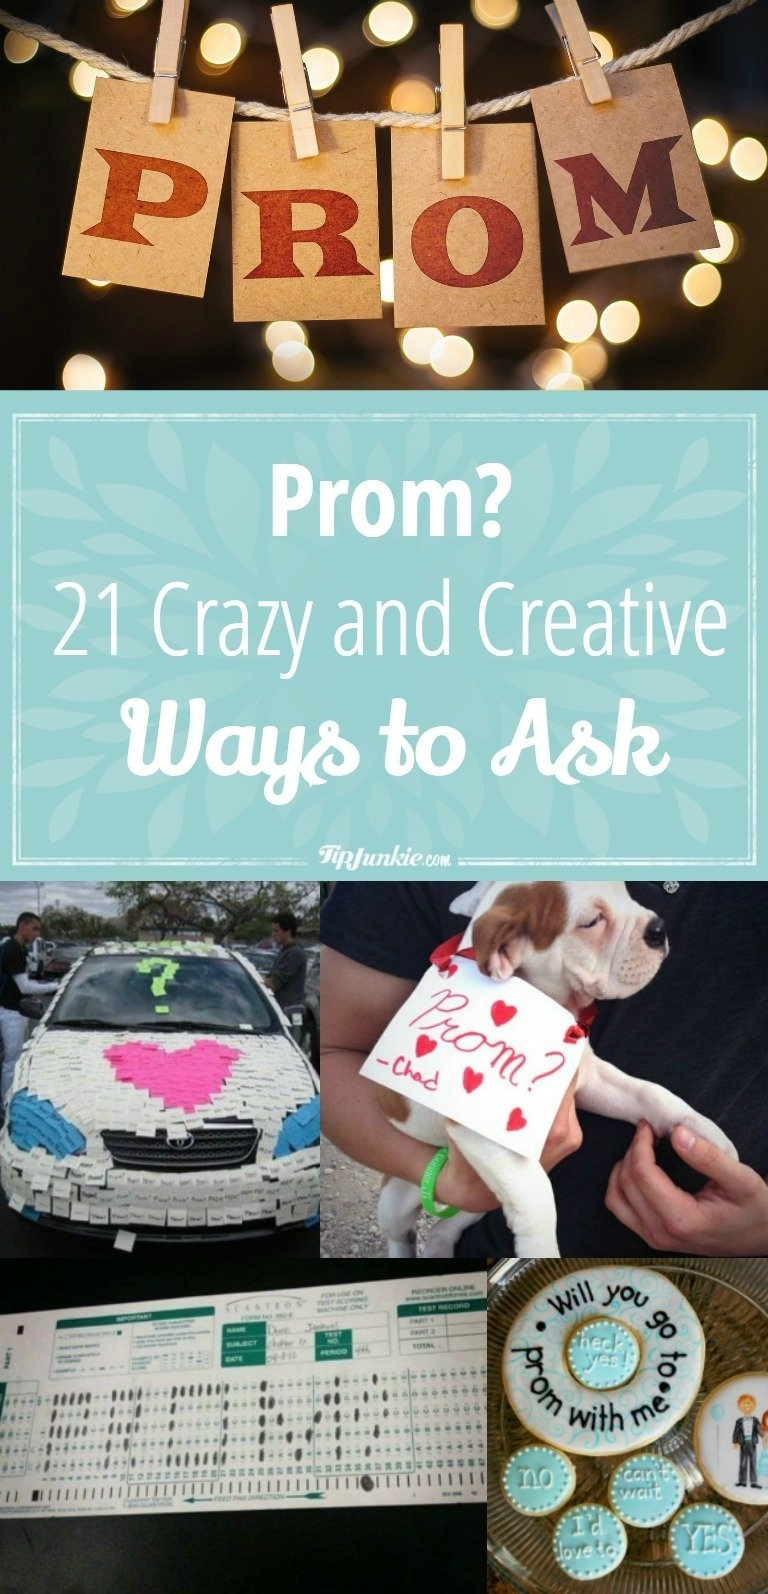 10 Pretty Ask A Girl To Prom Ideas prom 21 crazy and creative ways to ask tip junkie 5 2021